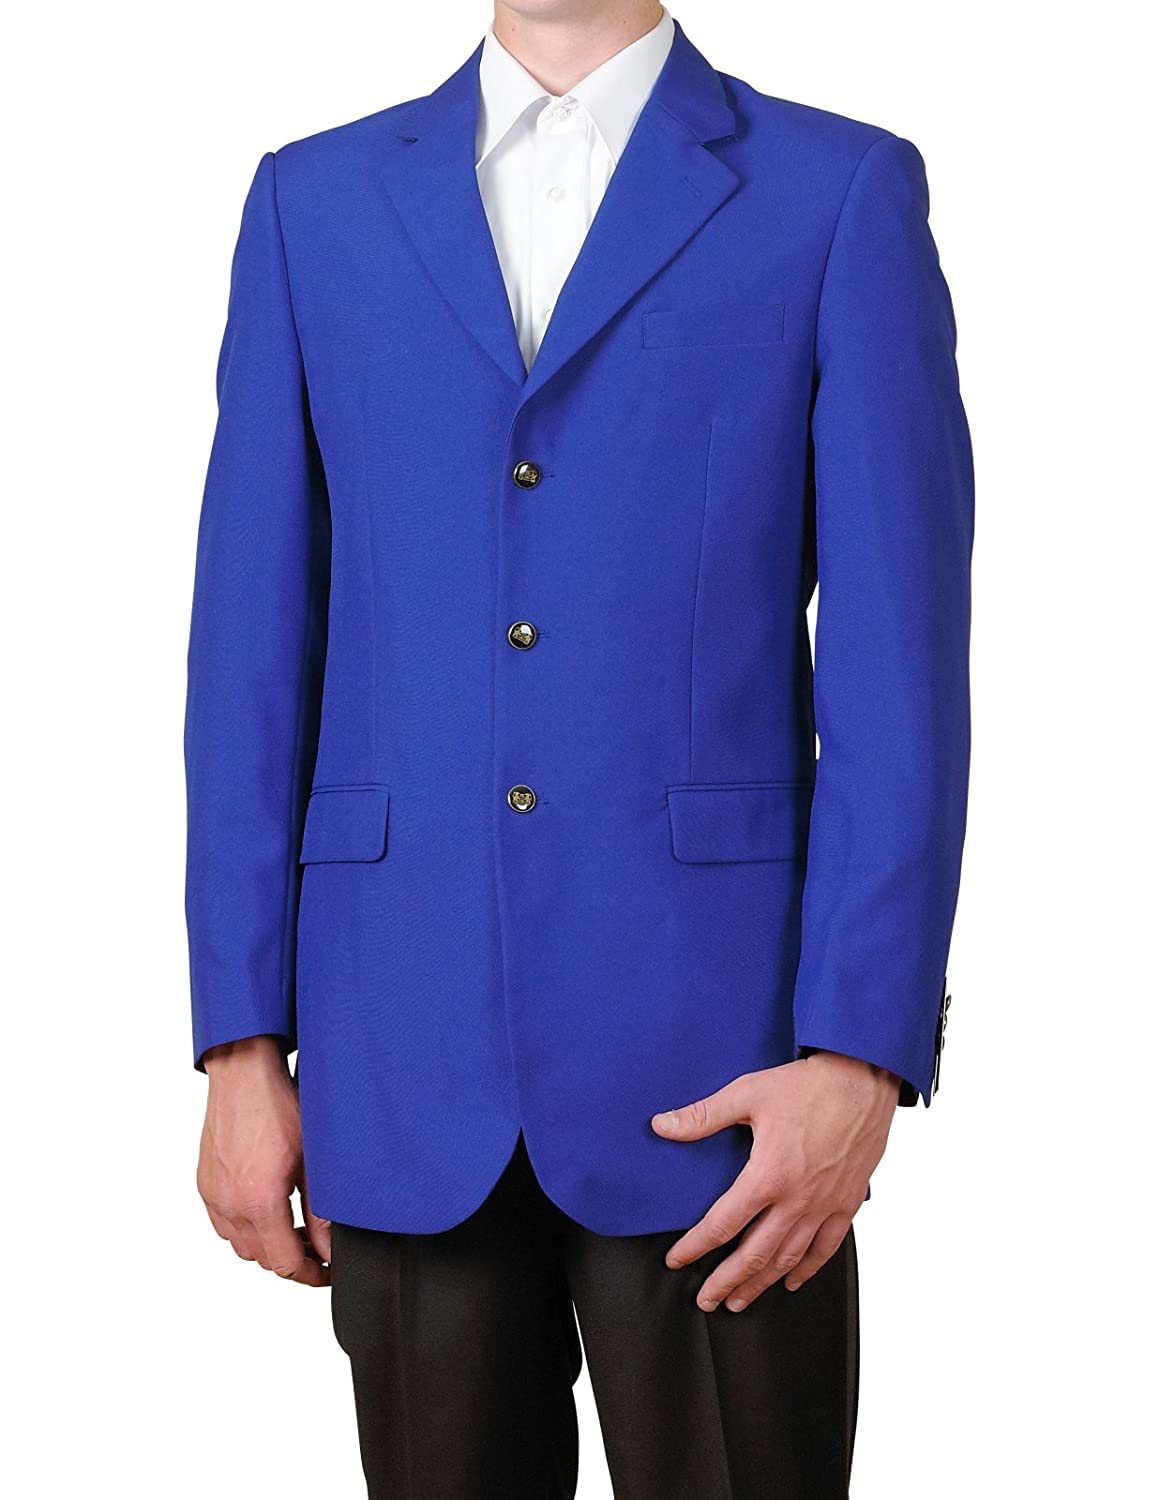 New Mens 3 Button Single Breasted Royal Blue Blazer Sportcoat Suit ...